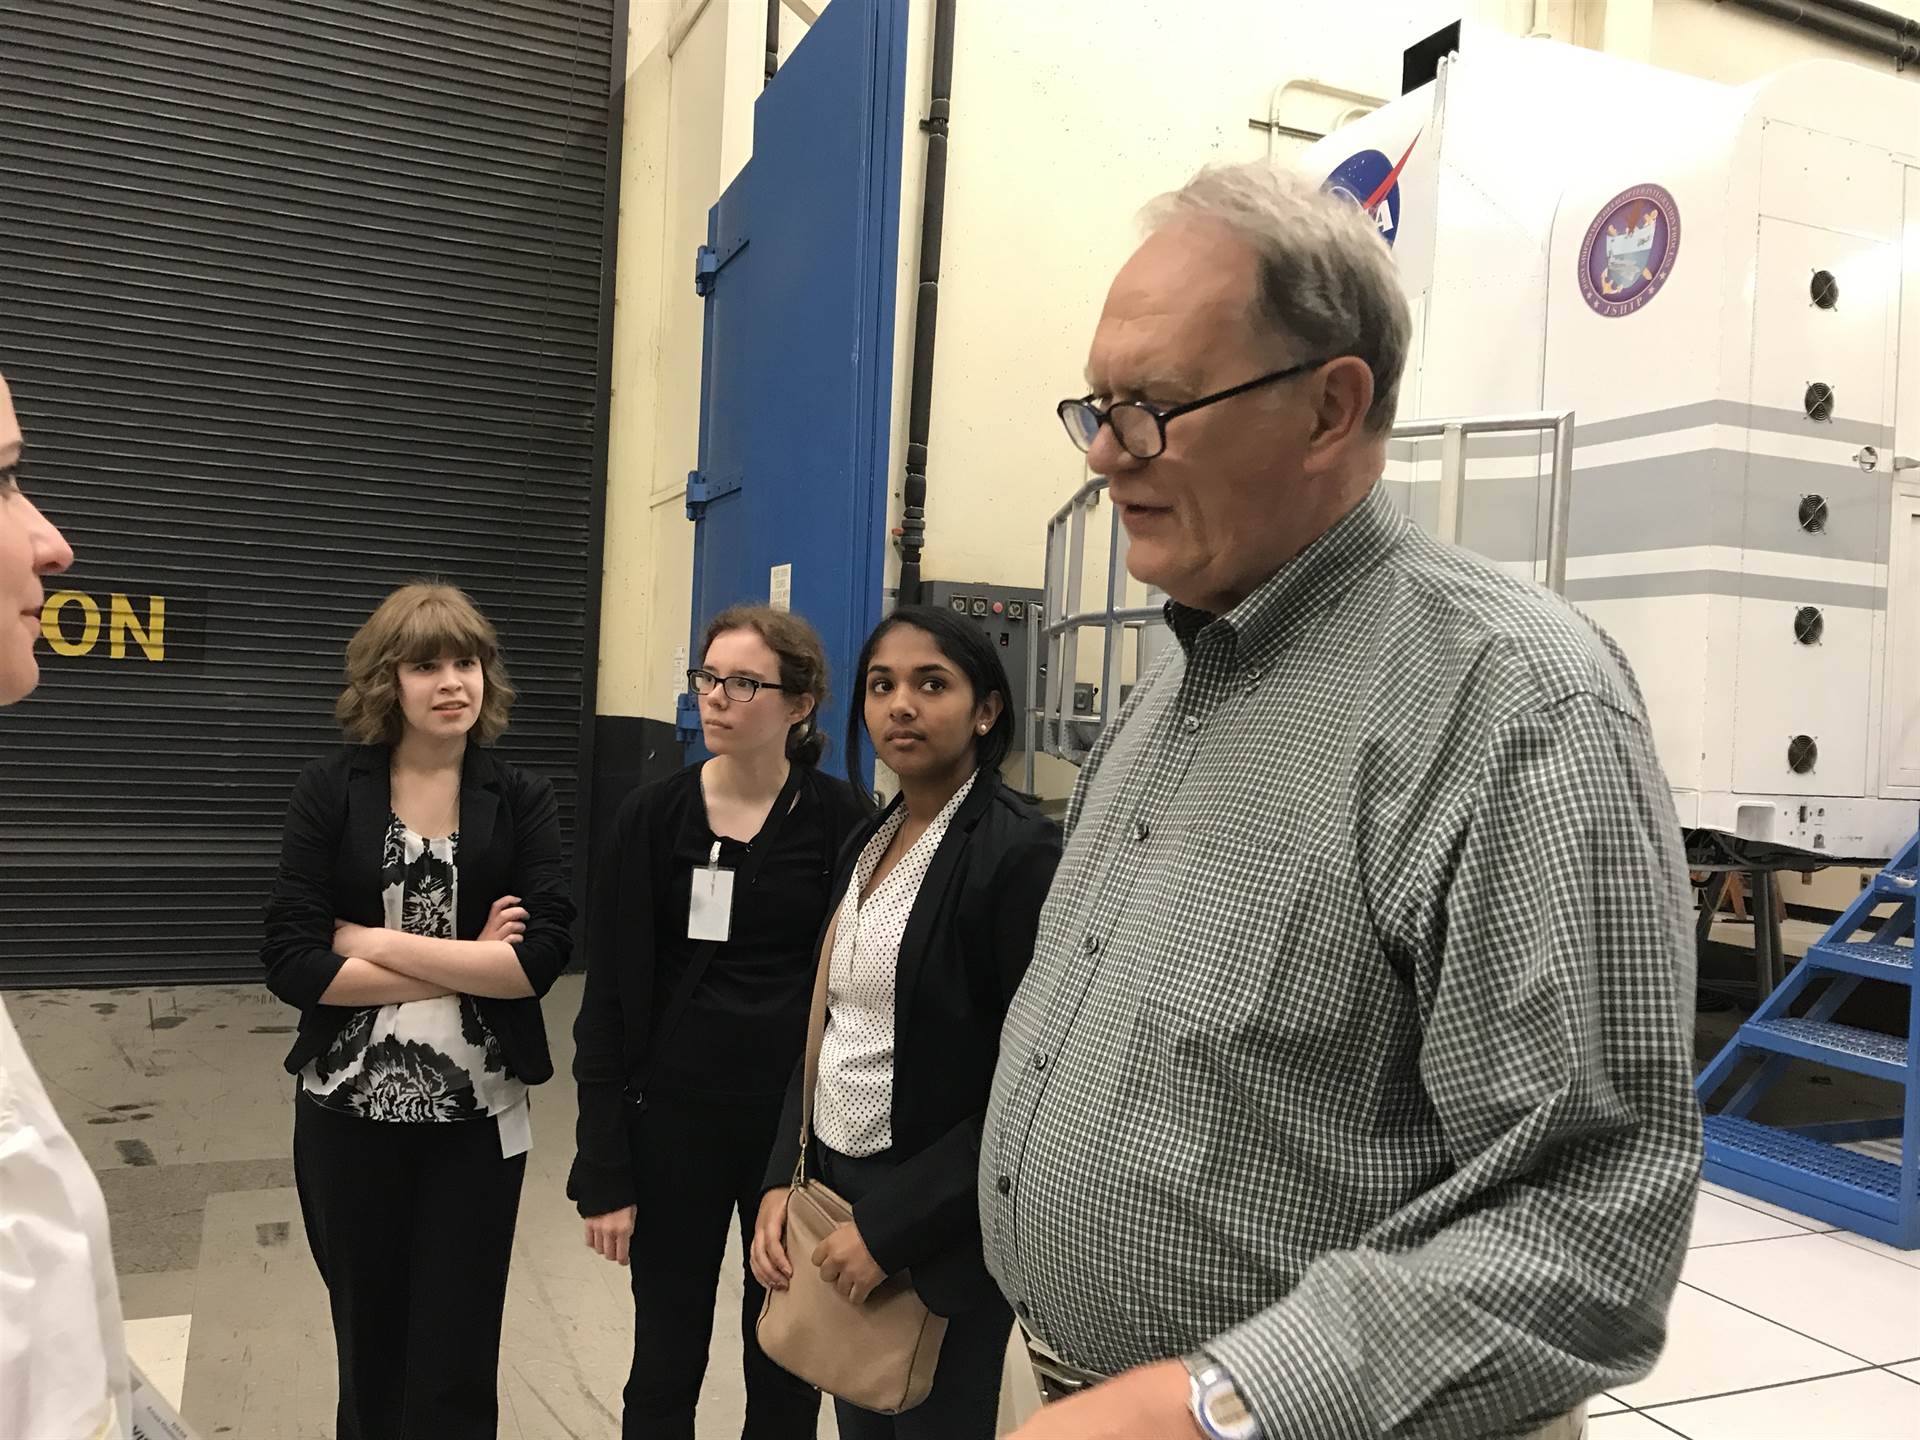 Our Commack researchers tour the NASA Vertical Motion Simulator w NASA astronaut Karol J. Bobko.